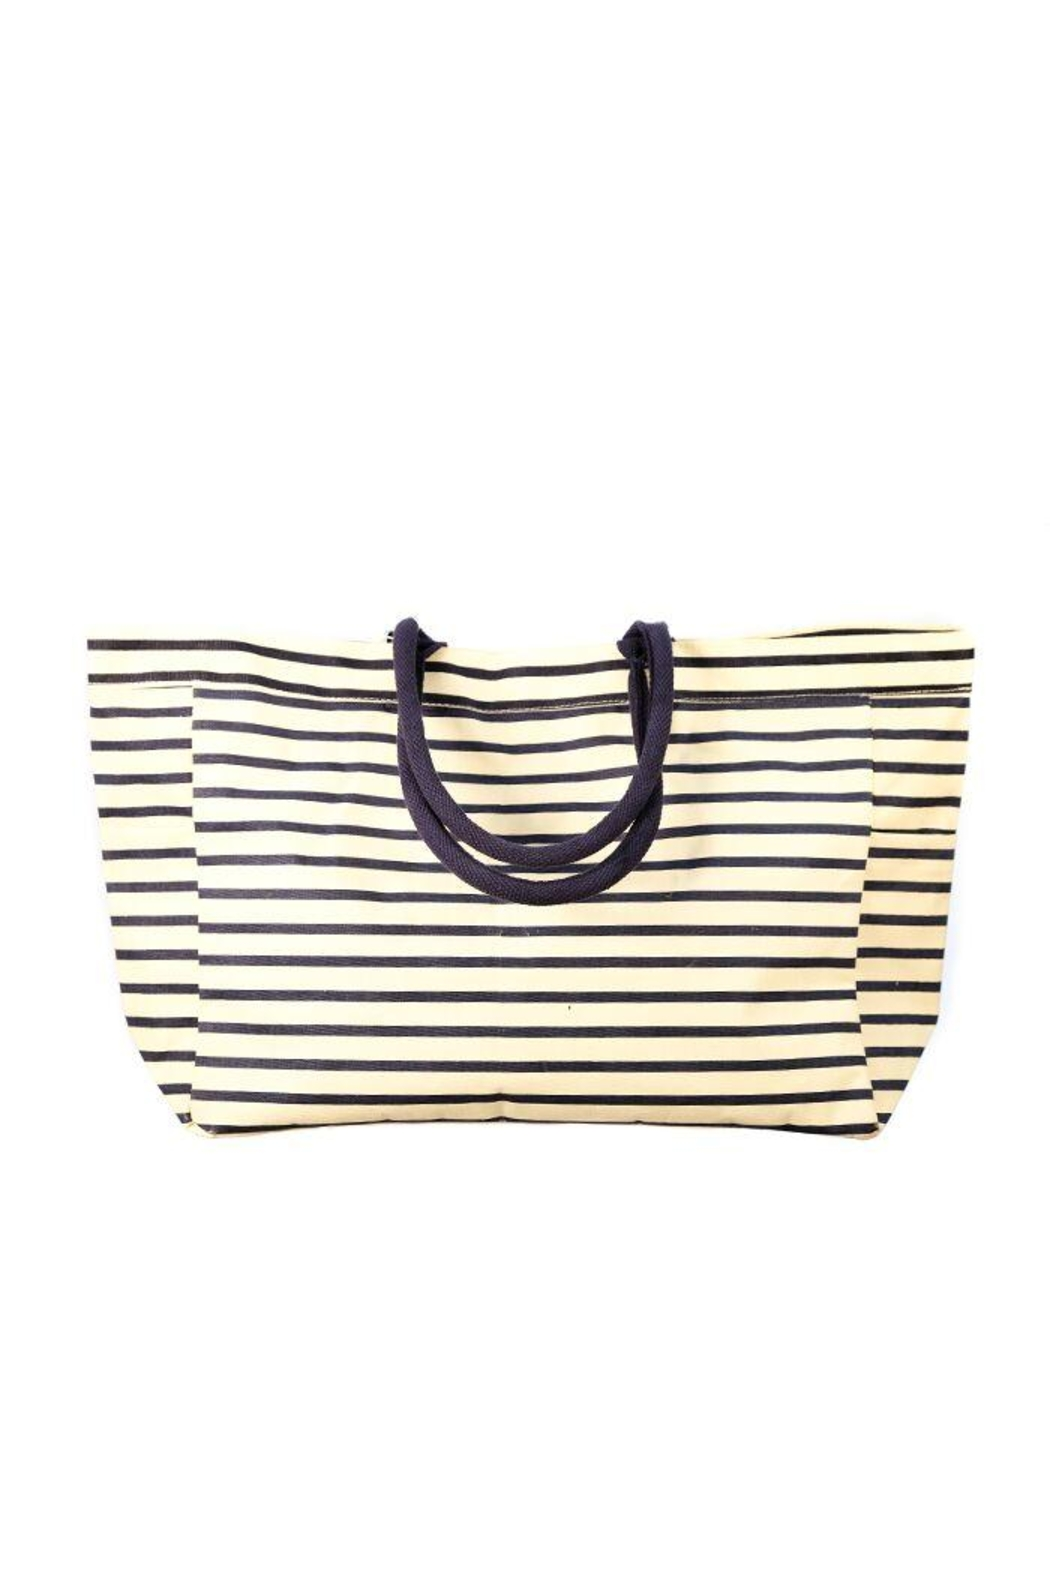 Rock Flower Paper Bateau Stripe Tote Bag - Front Cropped Image